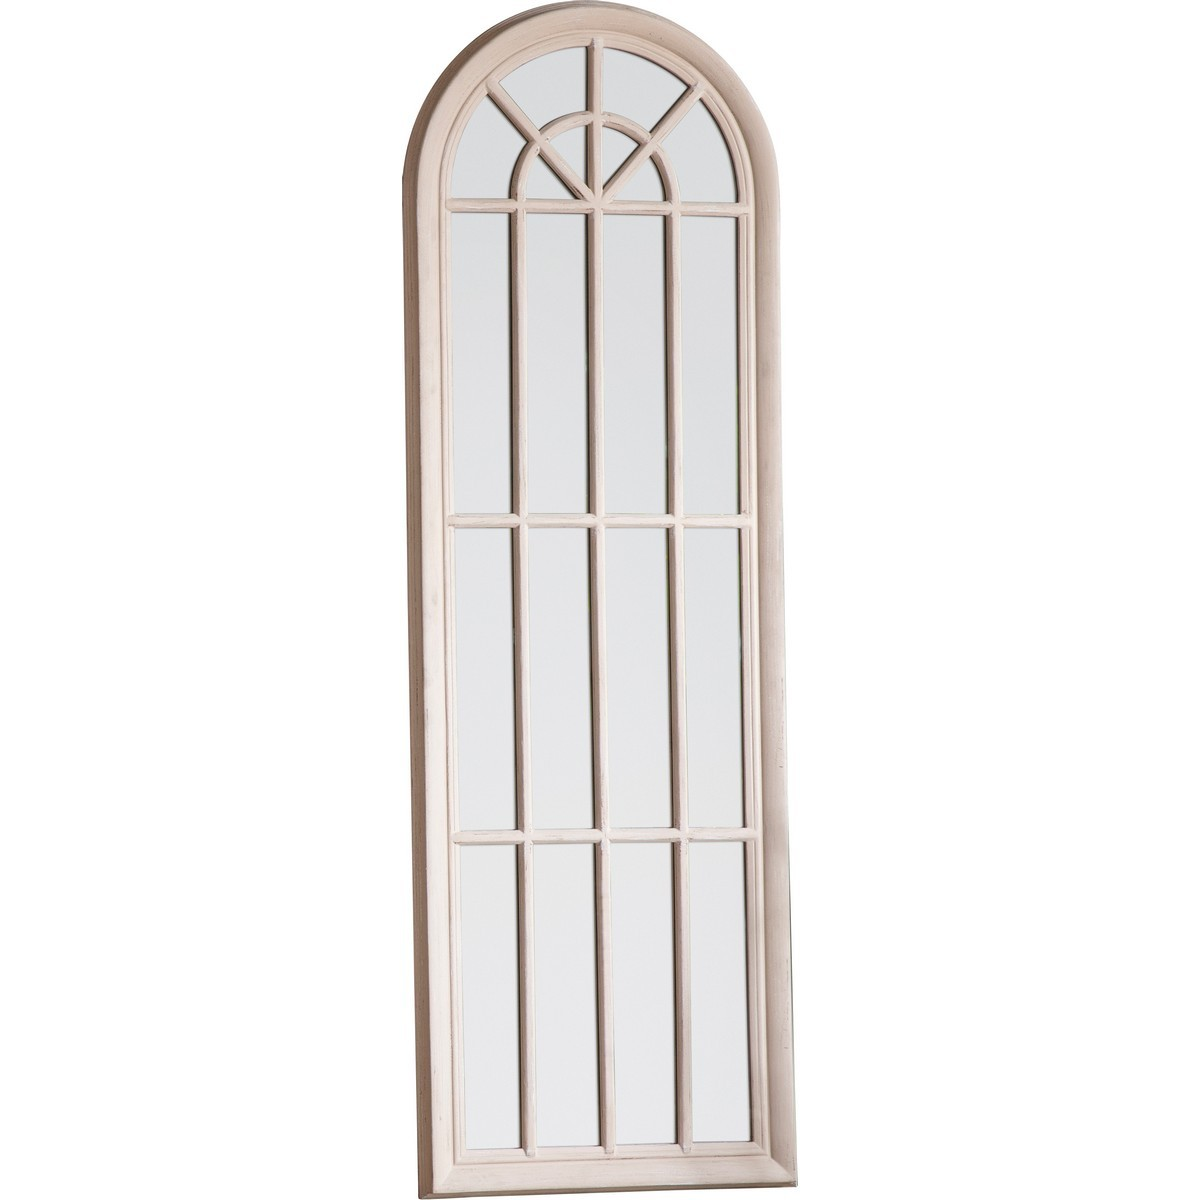 Calam Arch Panelled Window Floor Mirror, 180cm, Antique White